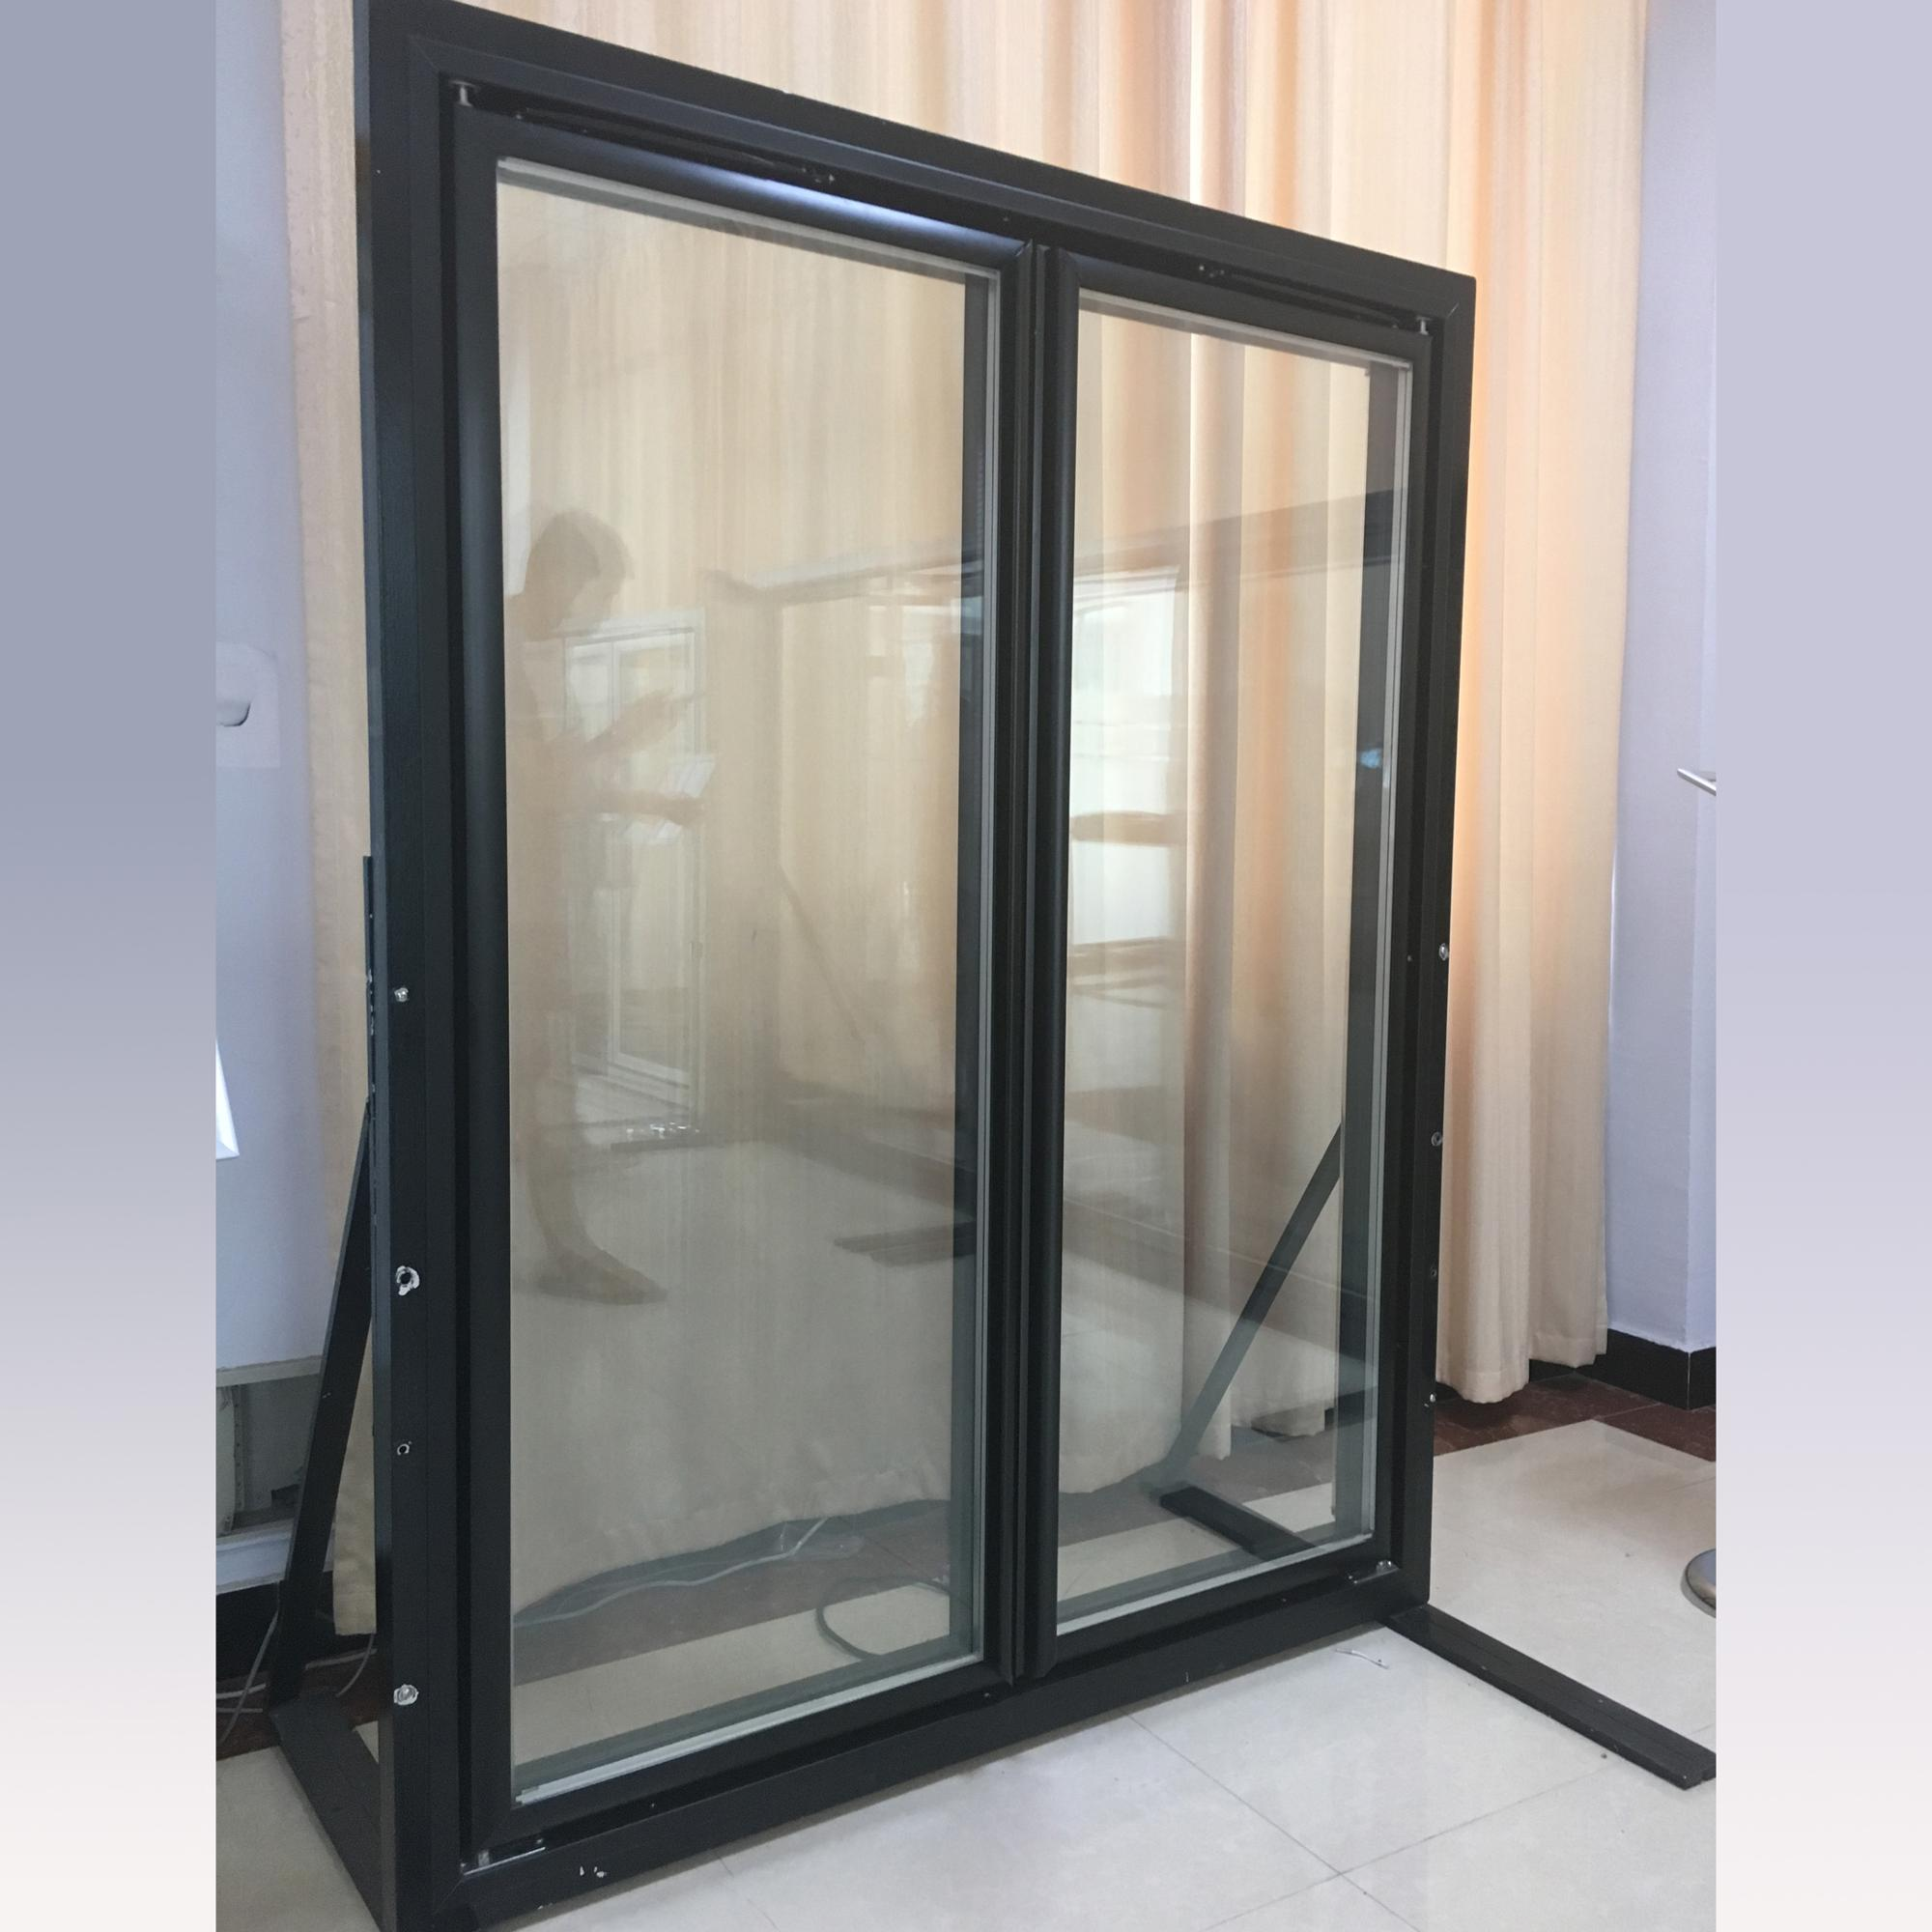 Refrigerated cabinets glass display walk-in coolers walk-in coolers and freezers